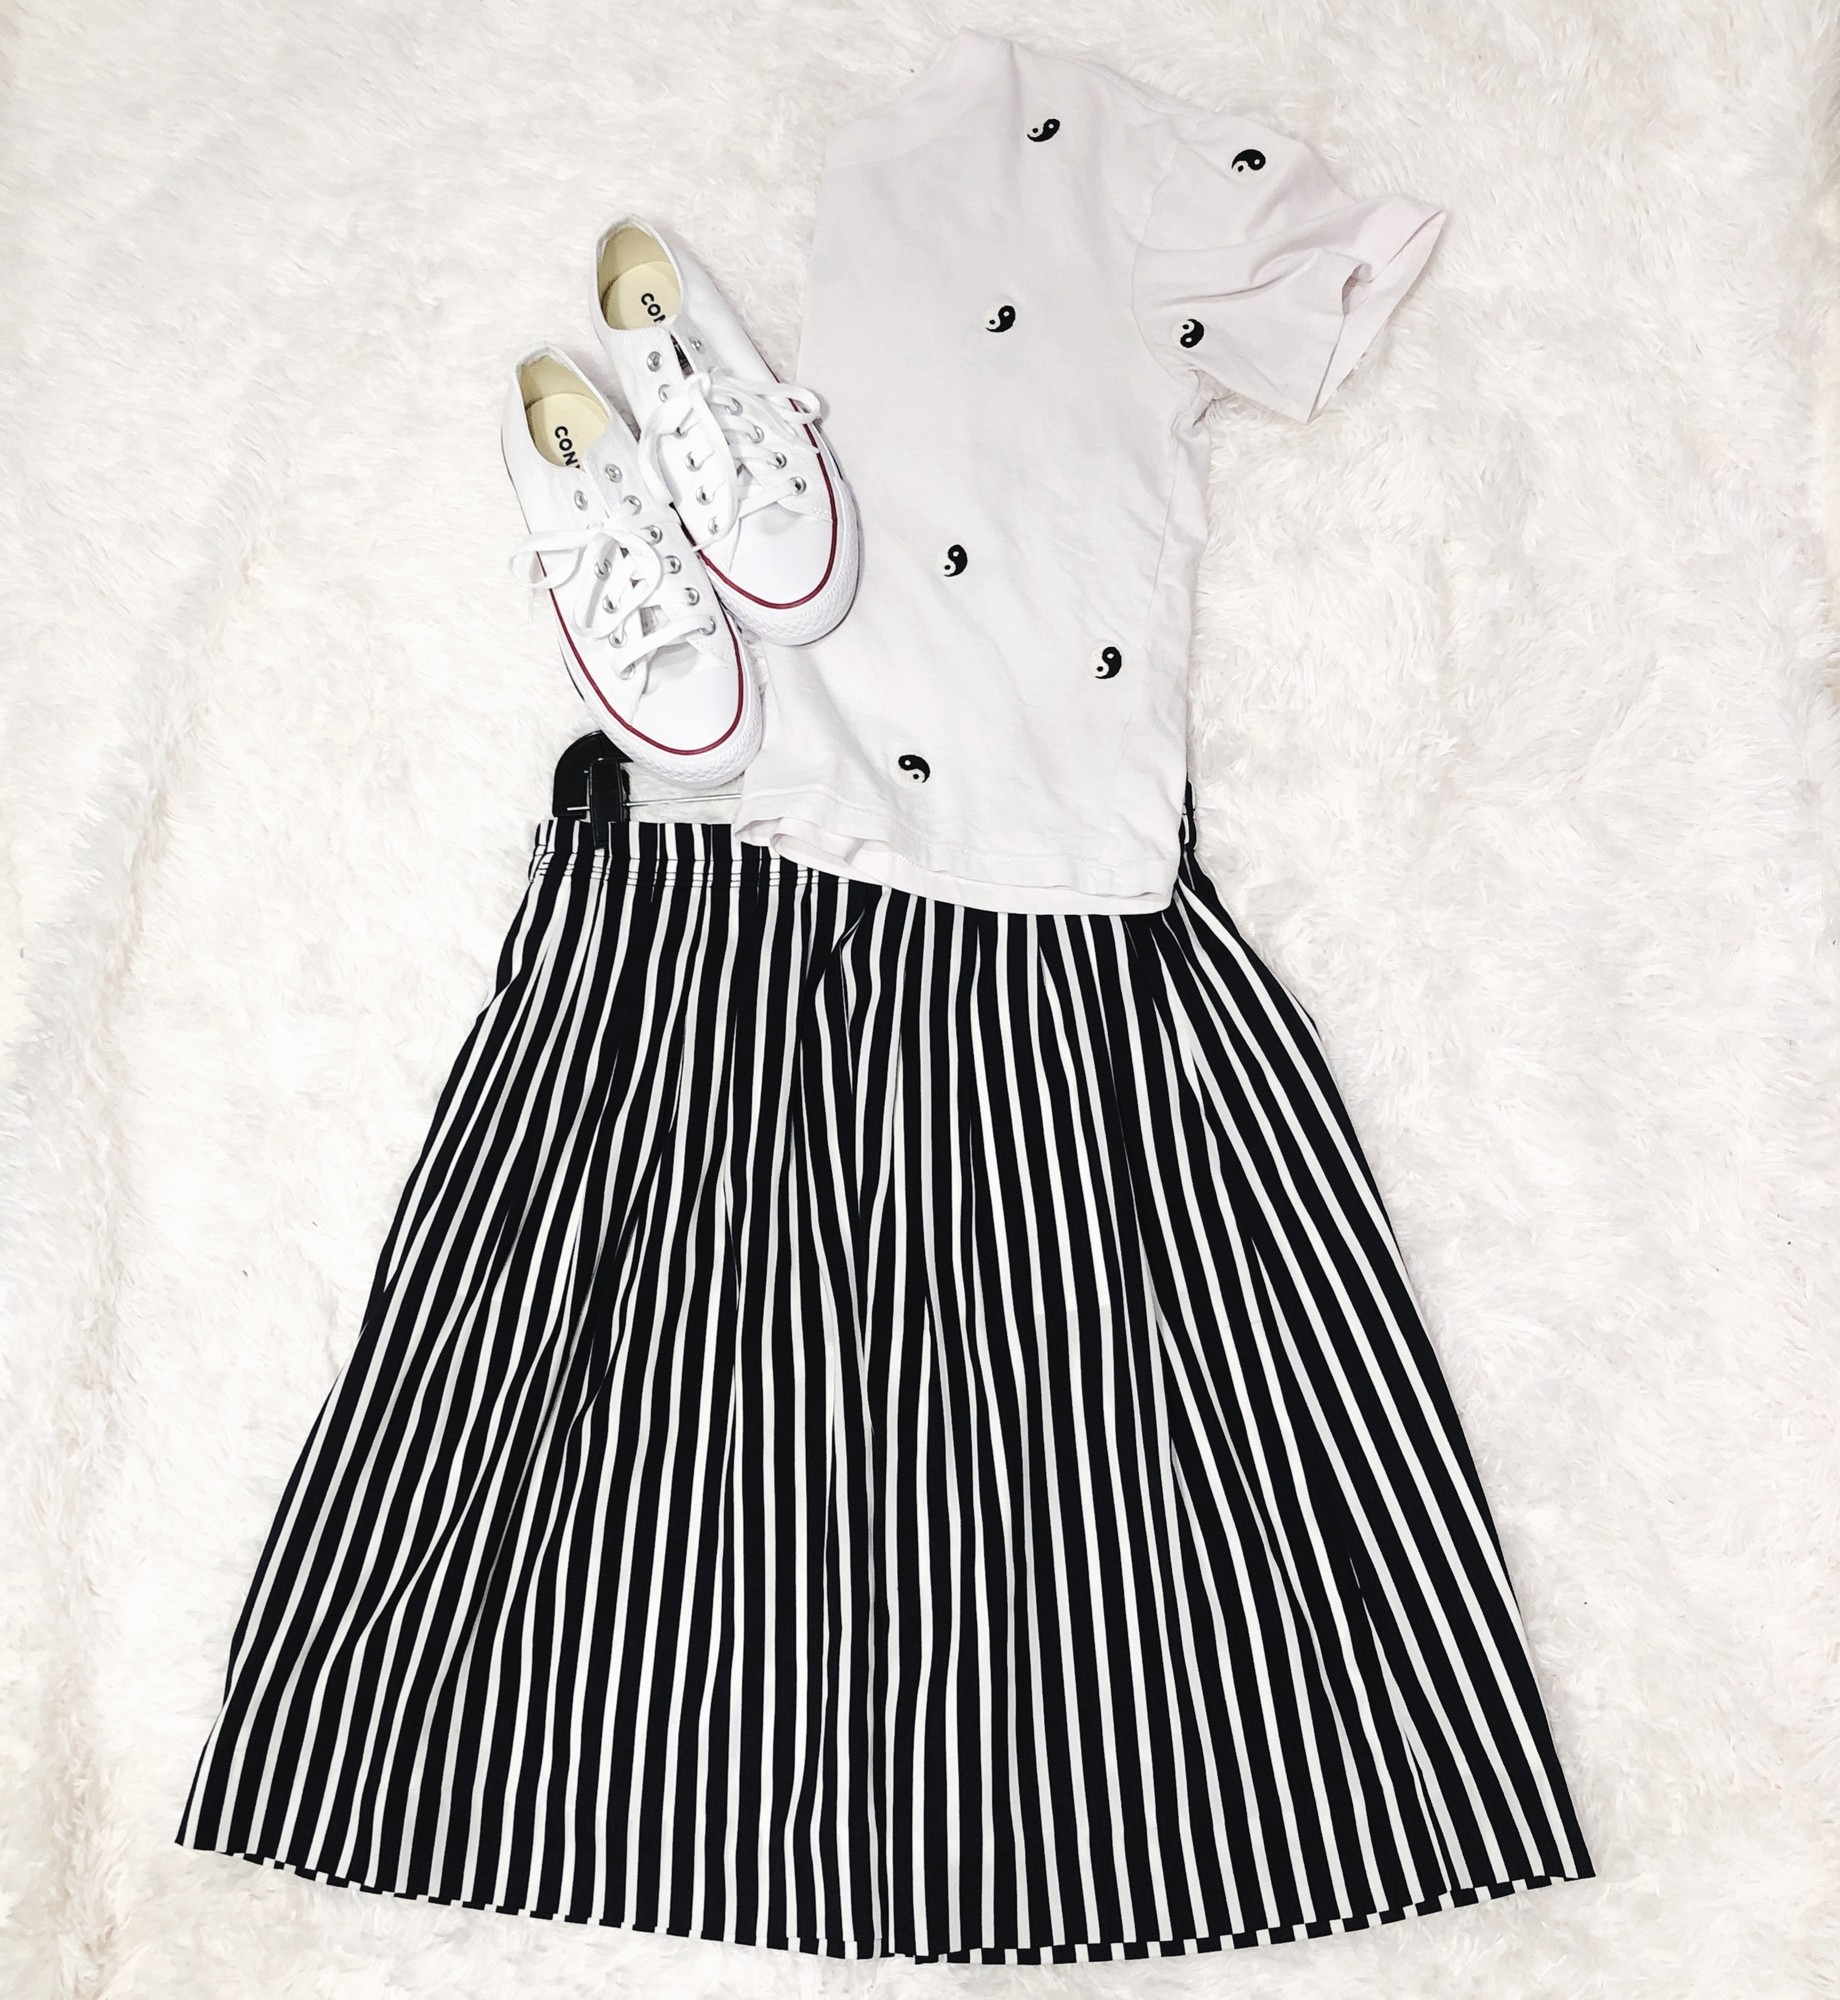 Dress this up or down!